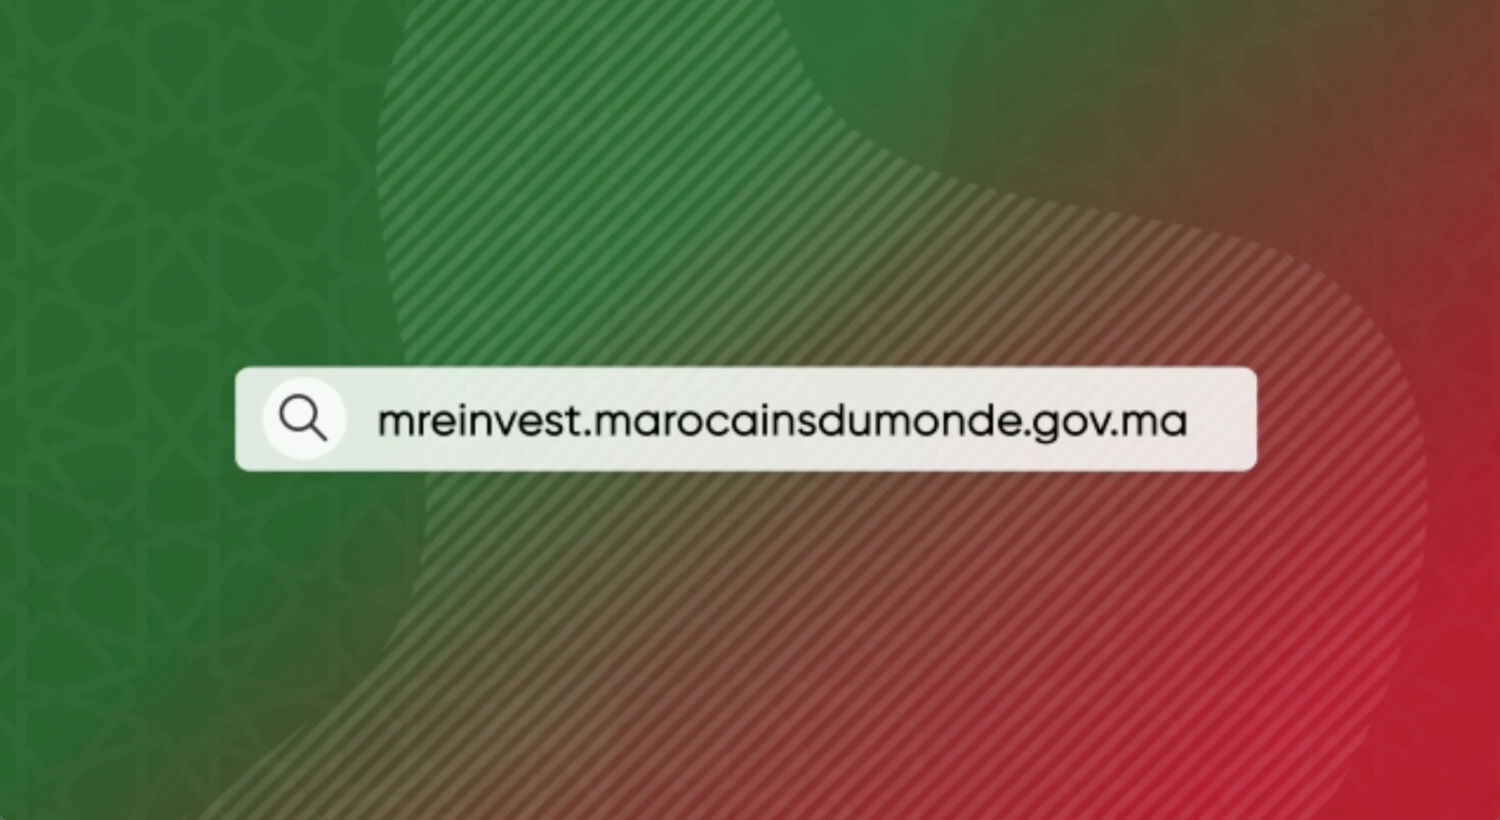 The Delegate Ministry in charge of Moroccans Living Abroad launches its new MRE Invest portal